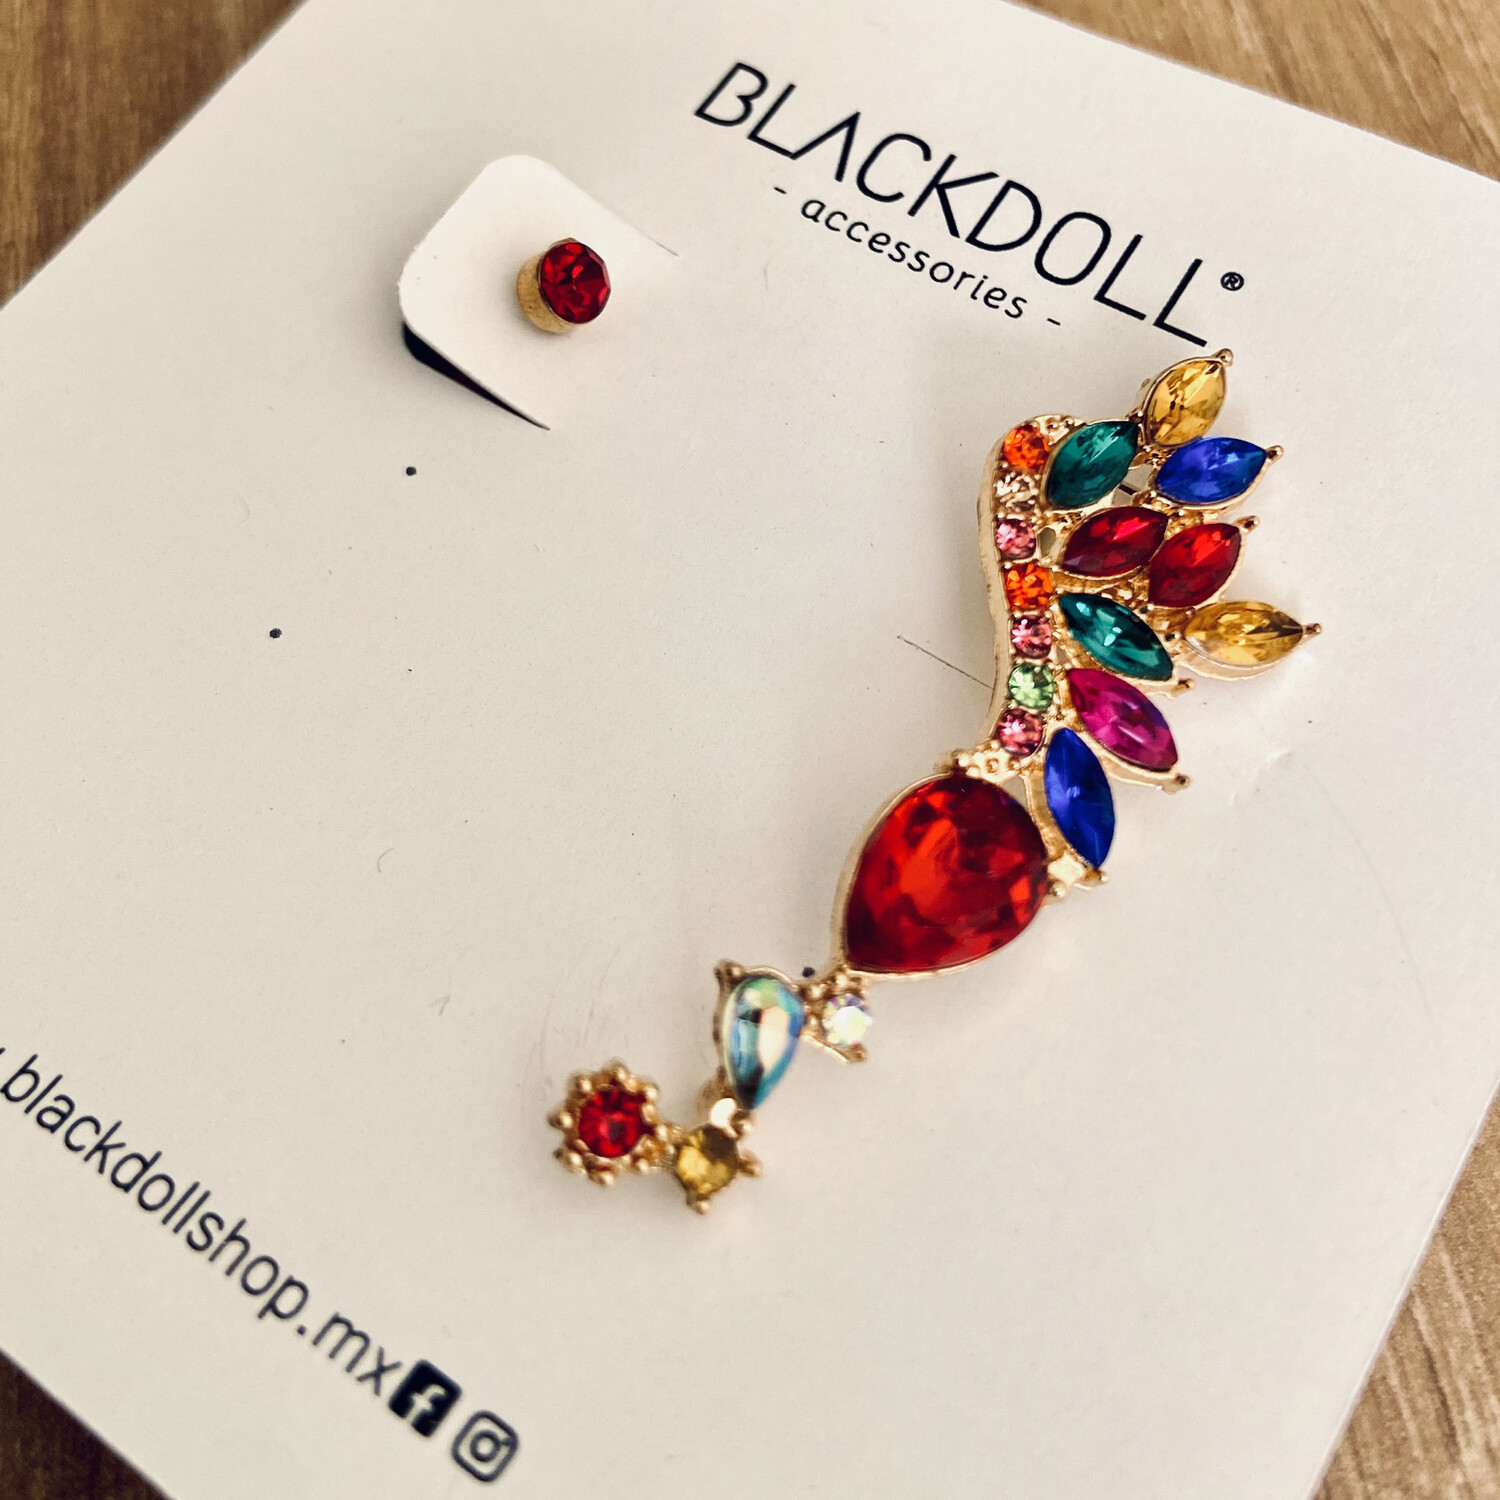 Earcuff Colorfull 1 - BLACKDOLL ACCESSORIES